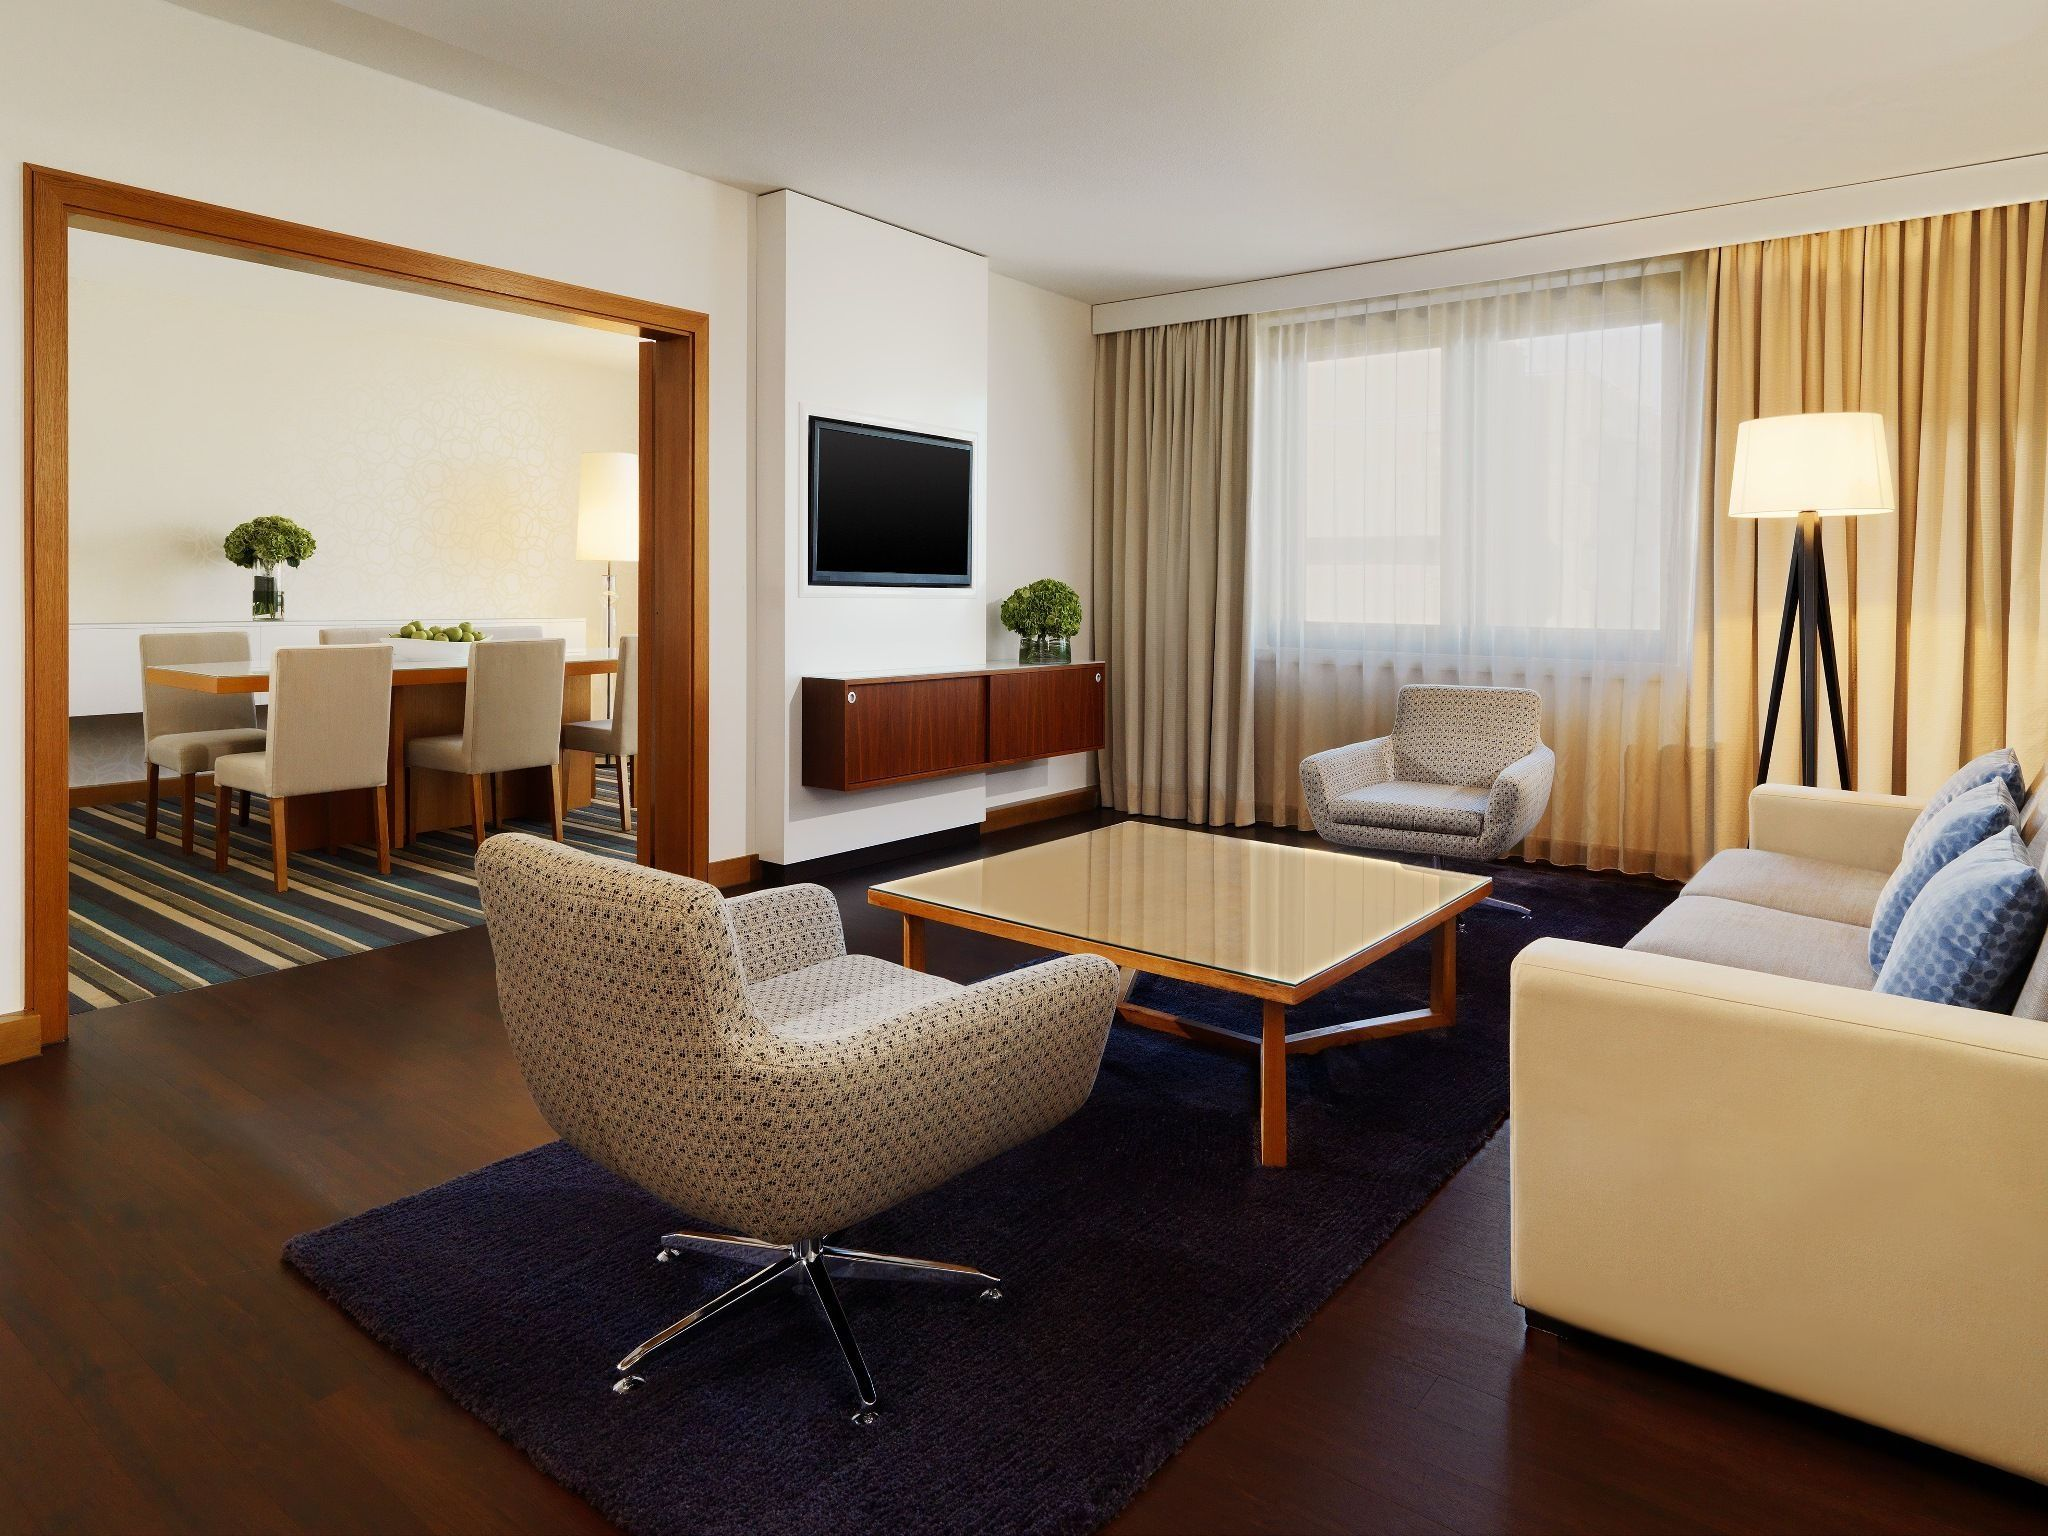 Sheraton Grand Suite - Sheraton Frankfurt Airport Hotel & Conference Center